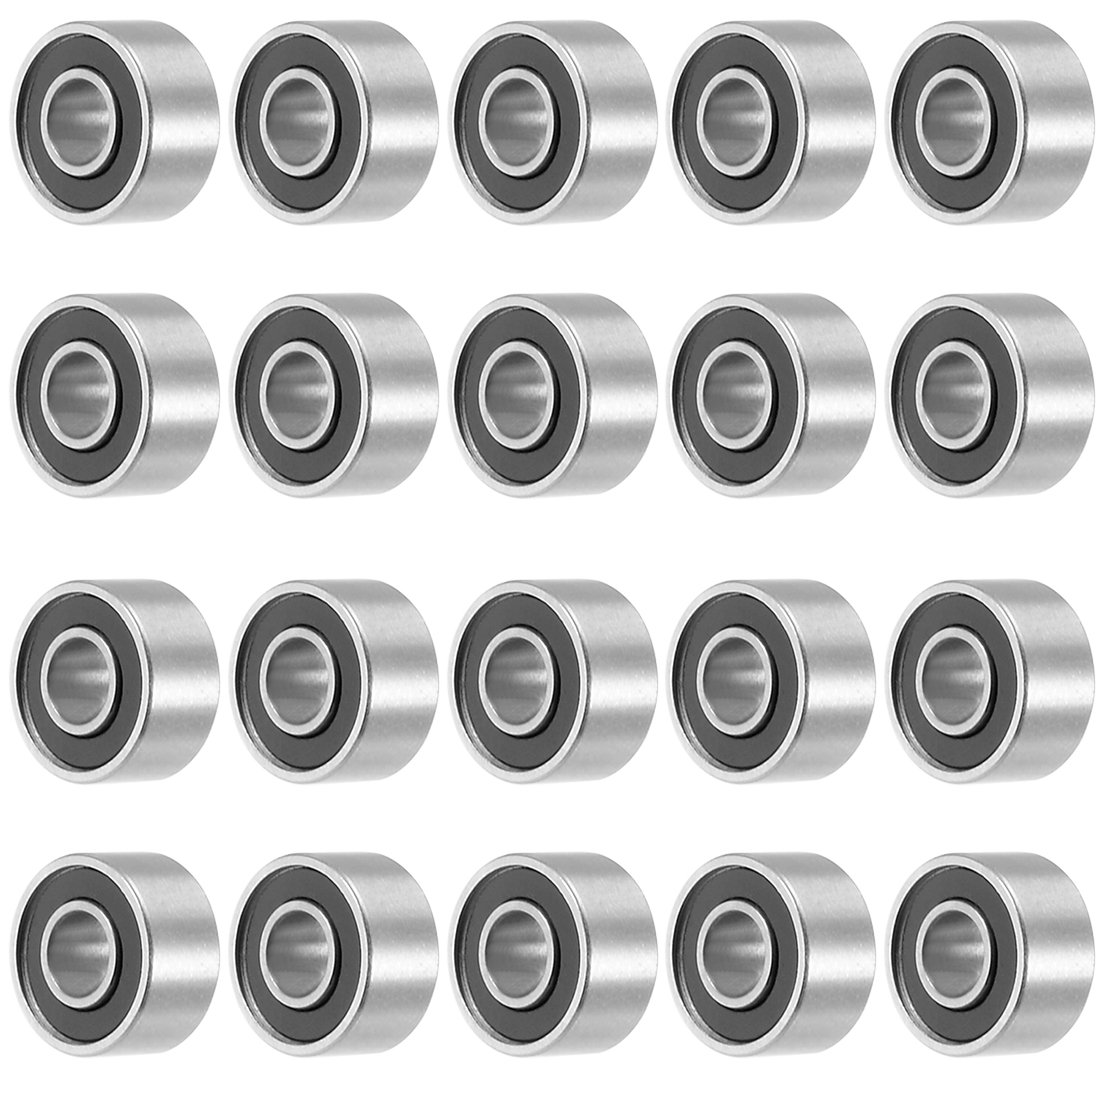 uxcell® 638RS 8mmx28mmx9mm Double Sealed Miniature Deep Groove Ball Bearing 20pcs a17072100ux0465